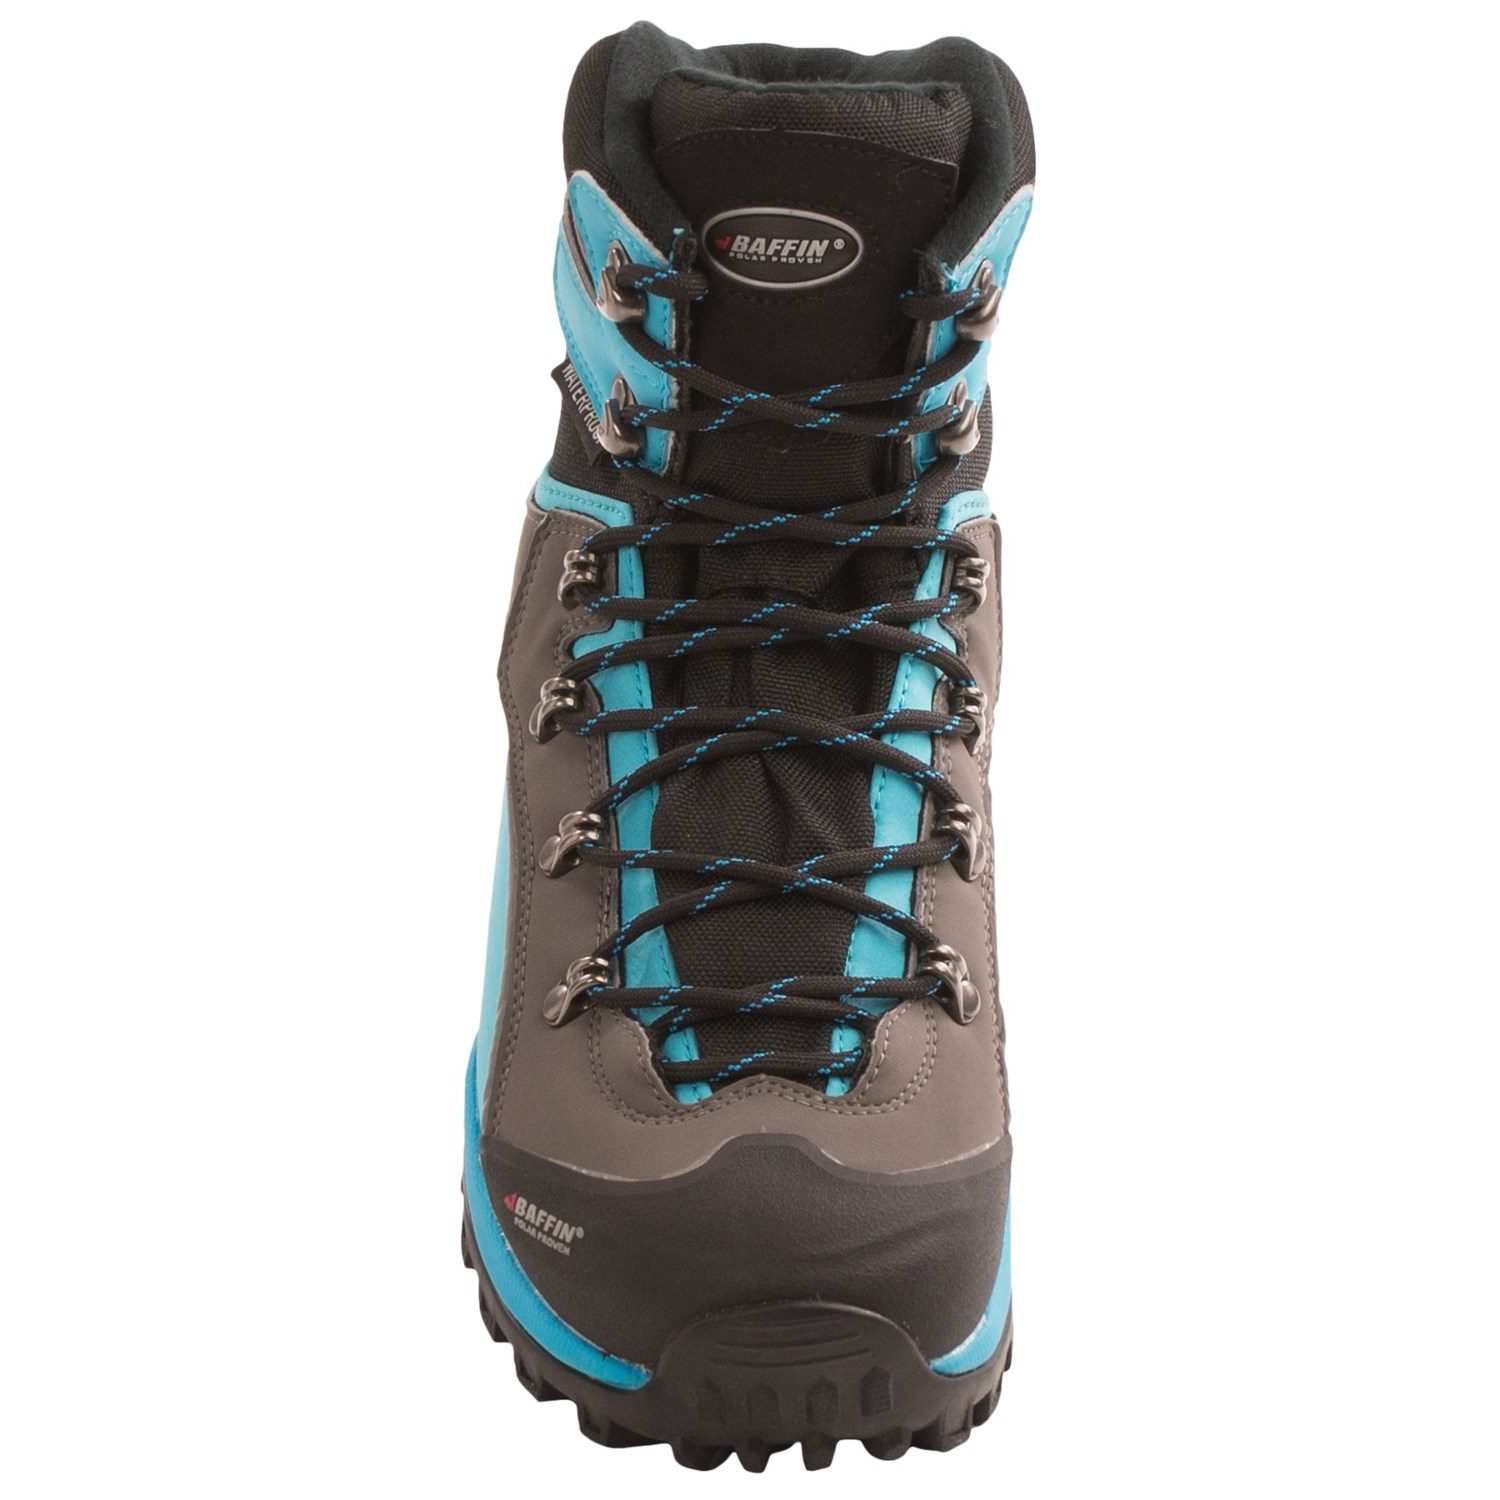 Baffin Scream Winter Boots (For Women) 9049D - Save 53%